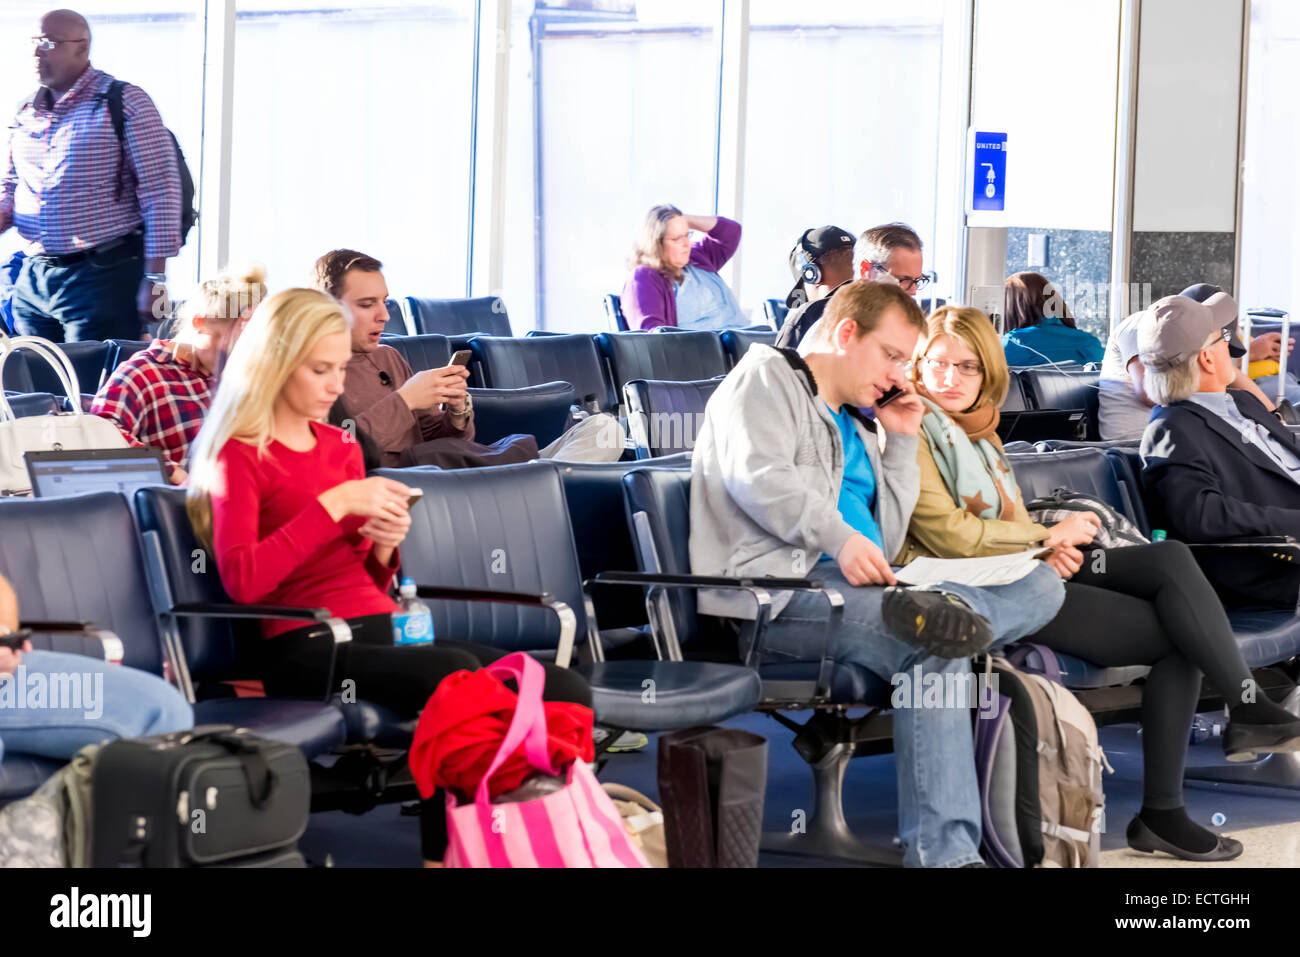 IAH, Houston Intercontinental Airport, Houston, TX, USA - passengers waiting with luggage in airport - Stock Image